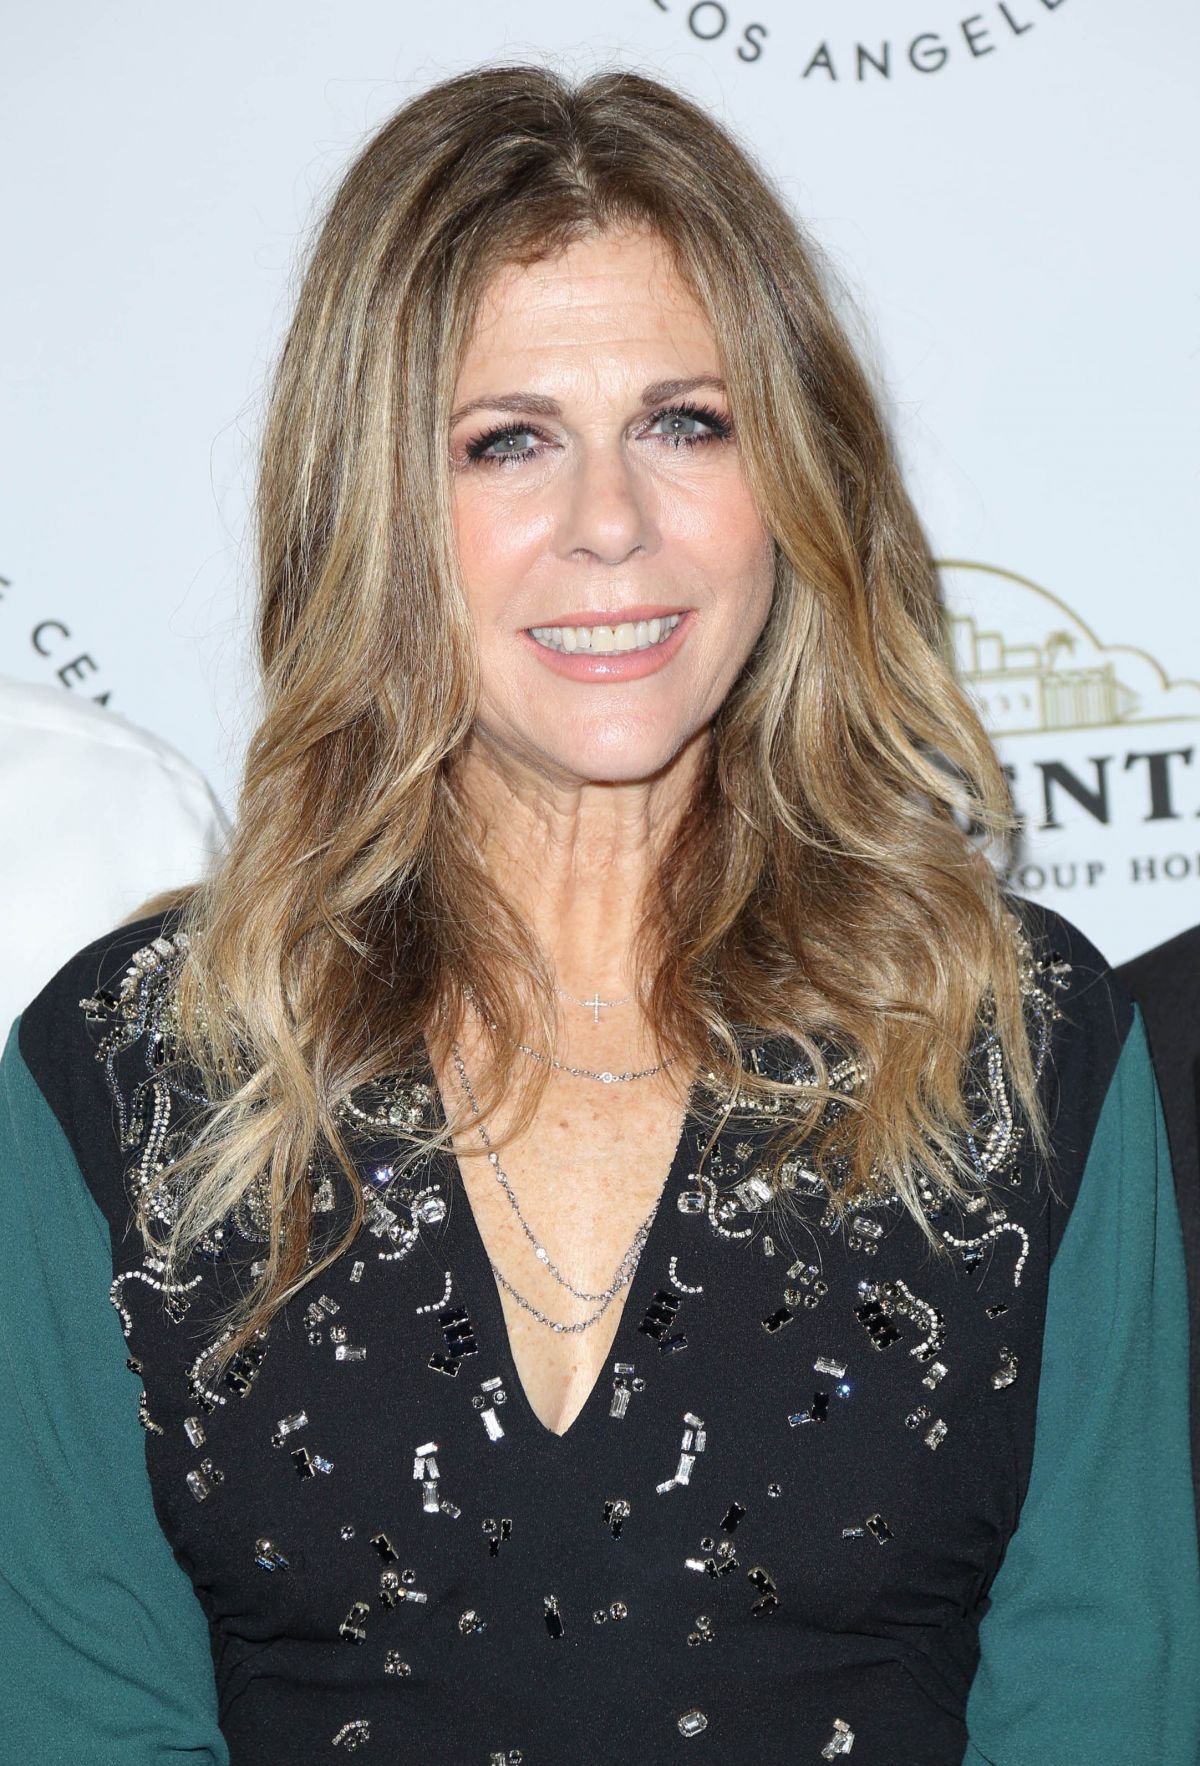 RITA WILSON at 25th Annual Simply Shakespeare Benefit in Santa Monica 12/08/2015